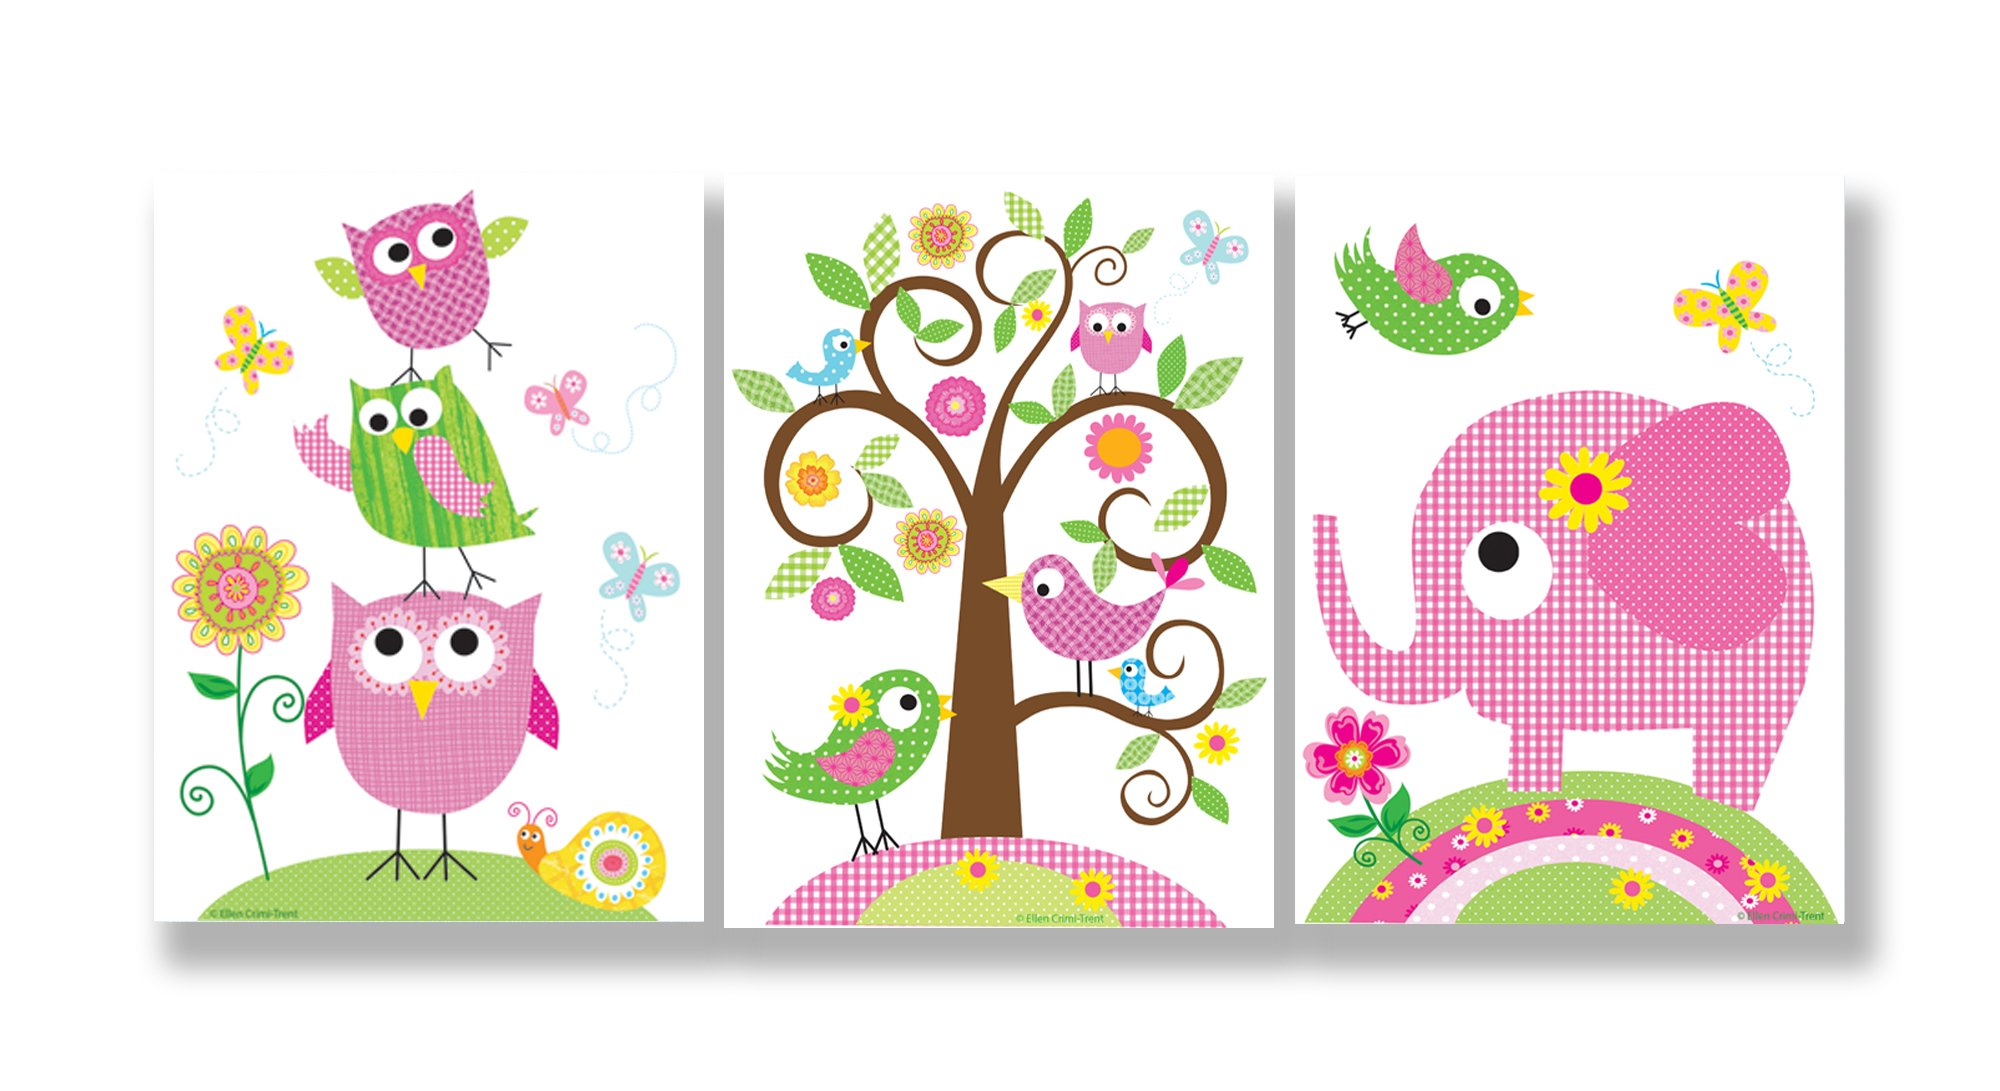 The Kids Room by Stupell Owls, Birds, and Elephant 3-Pc. Rectangle Wall Plaque Set, 11 x 0.5 x 15, Proudly Made in USA by The Kids Room by Stupell